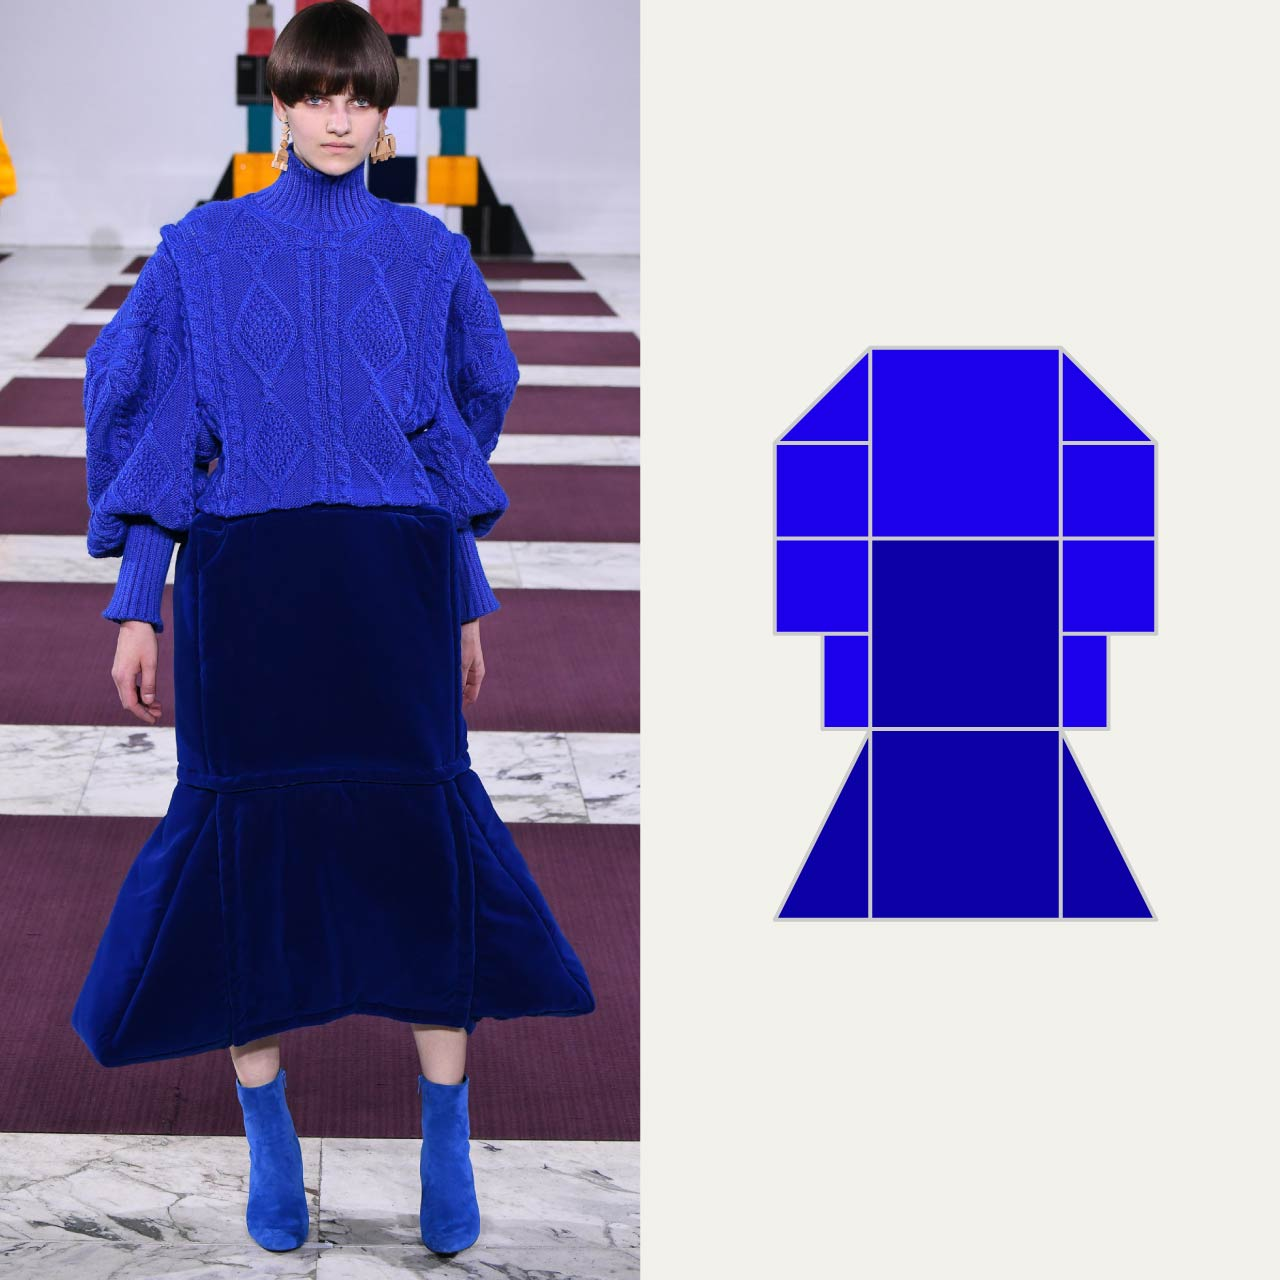 A Modular Anrealage Silhouette Through Blocks | The Cutting Class. The blocky forms relax in a knitwear construction.